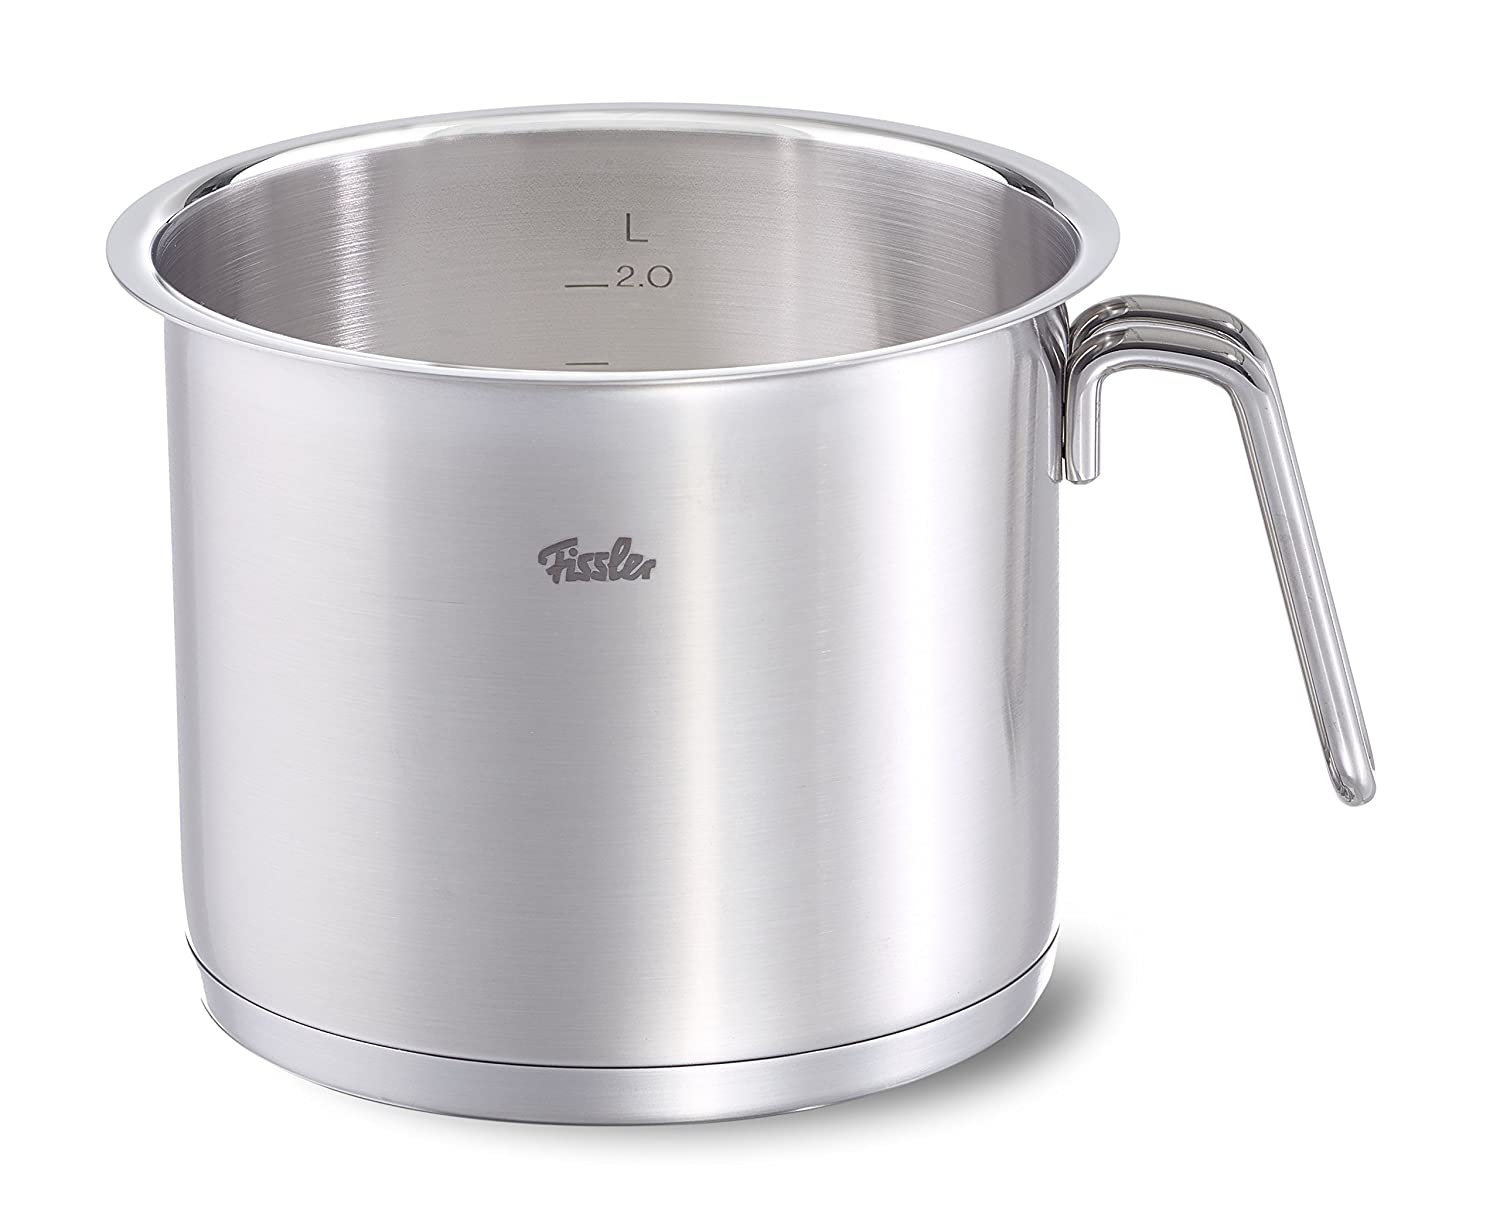 Amazon.com: Fissler Leche olla, acero inoxidable 18/10 ...